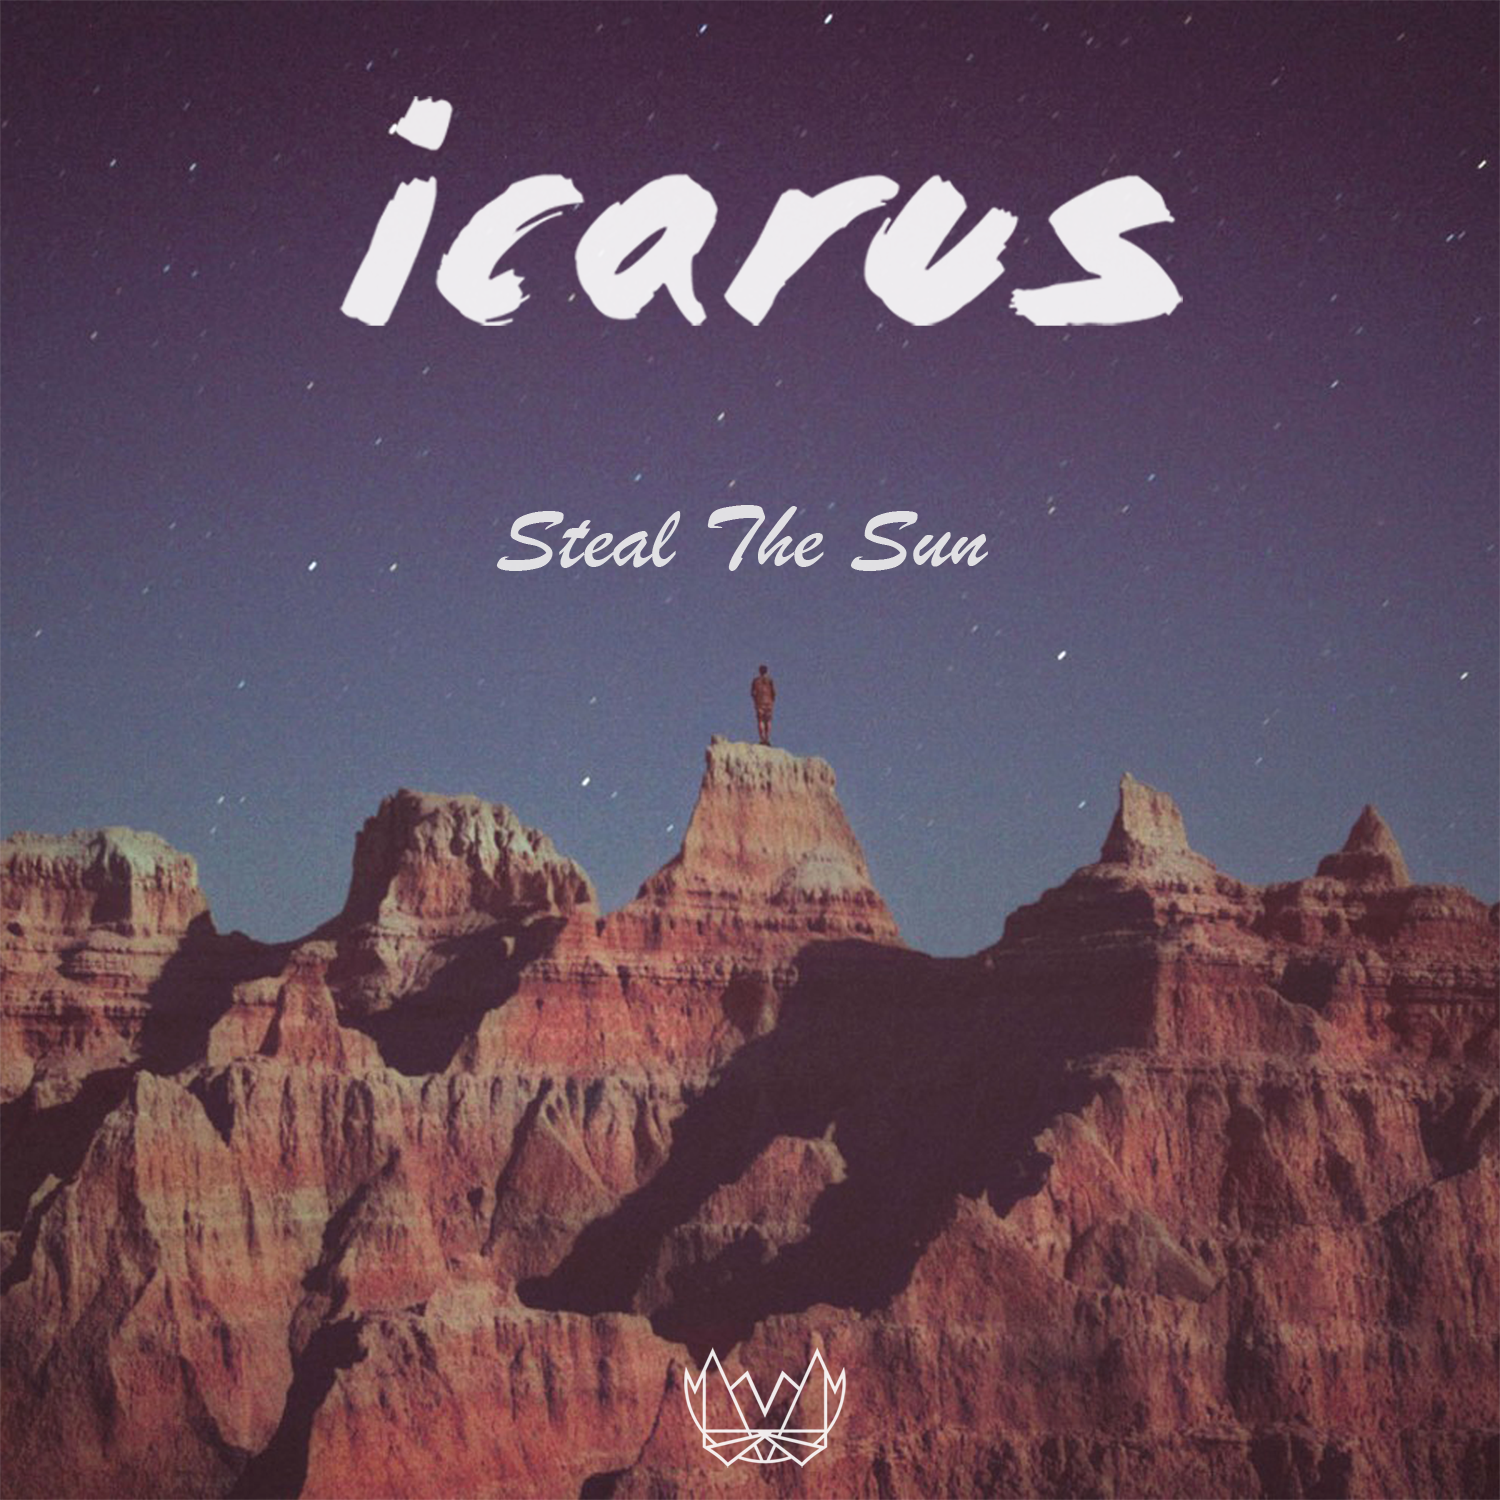 Icarus Steal The Sun sml logo1500